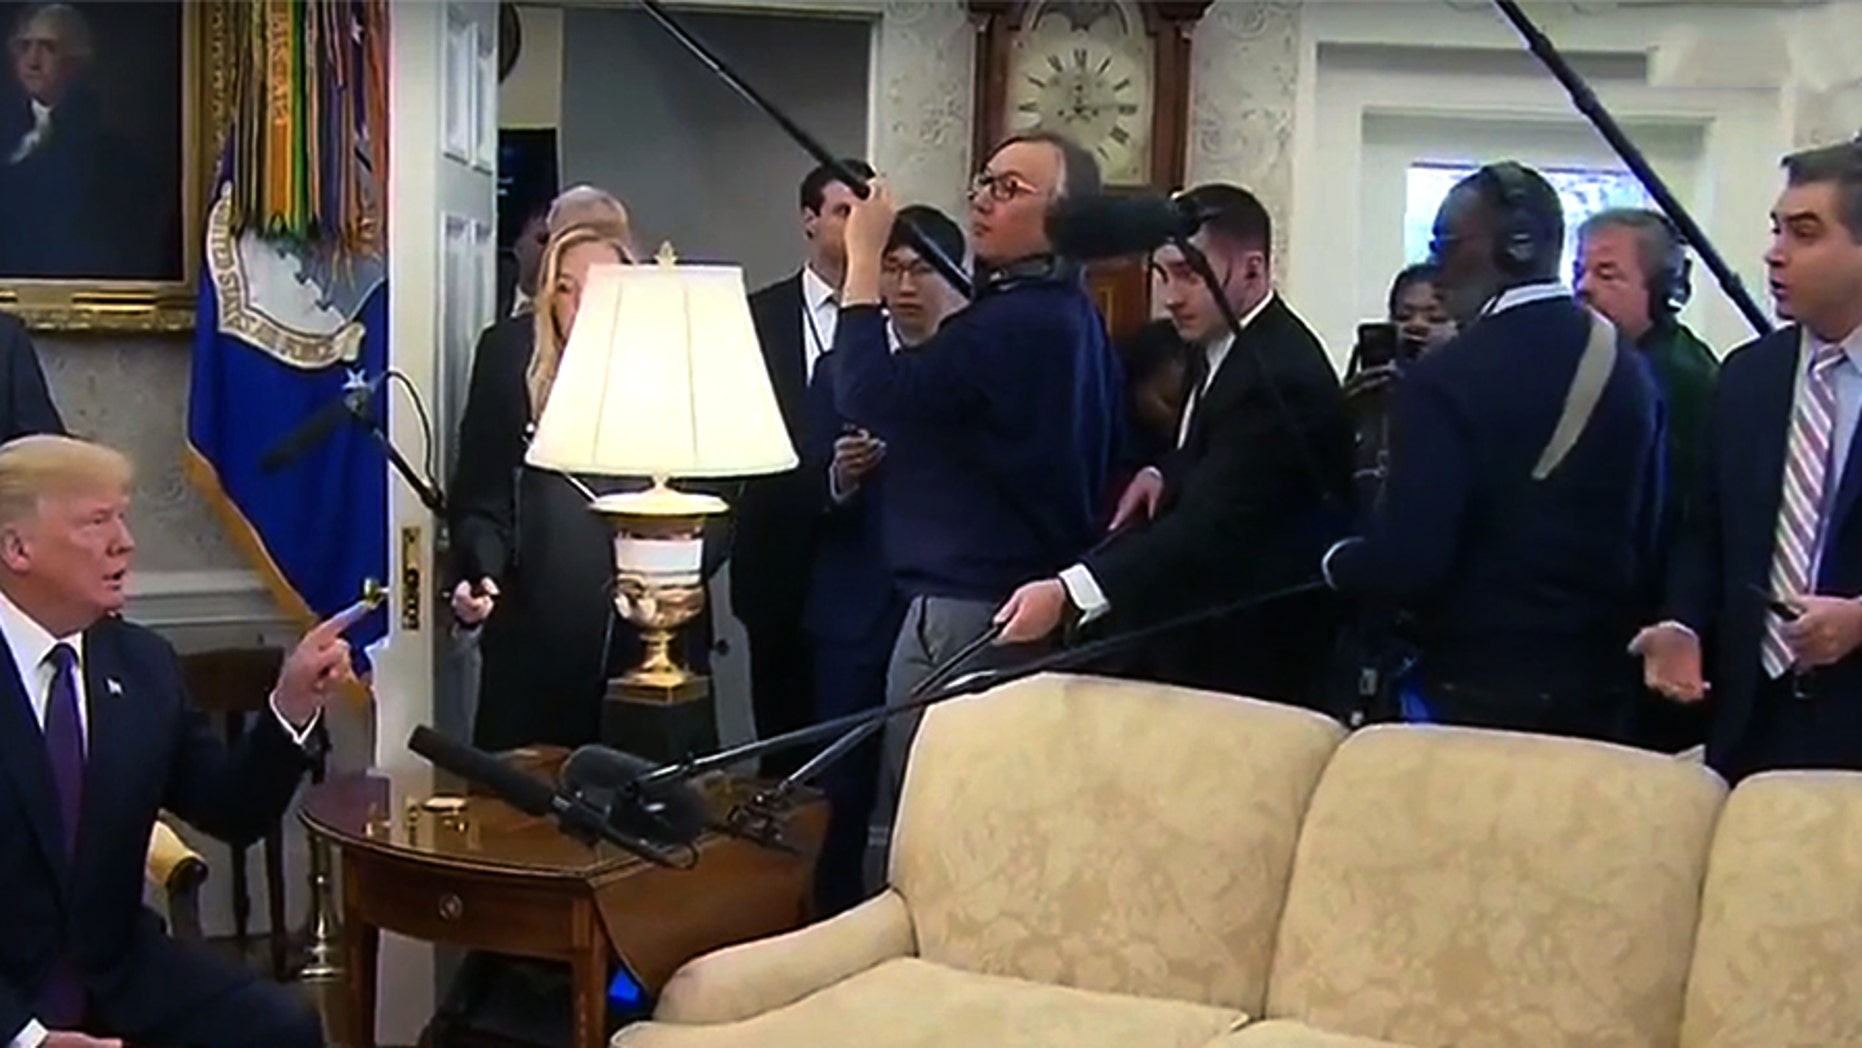 President Trump kicked CNN star Jim Acosta out of the Oval Office after the reporter badgered him with questions.